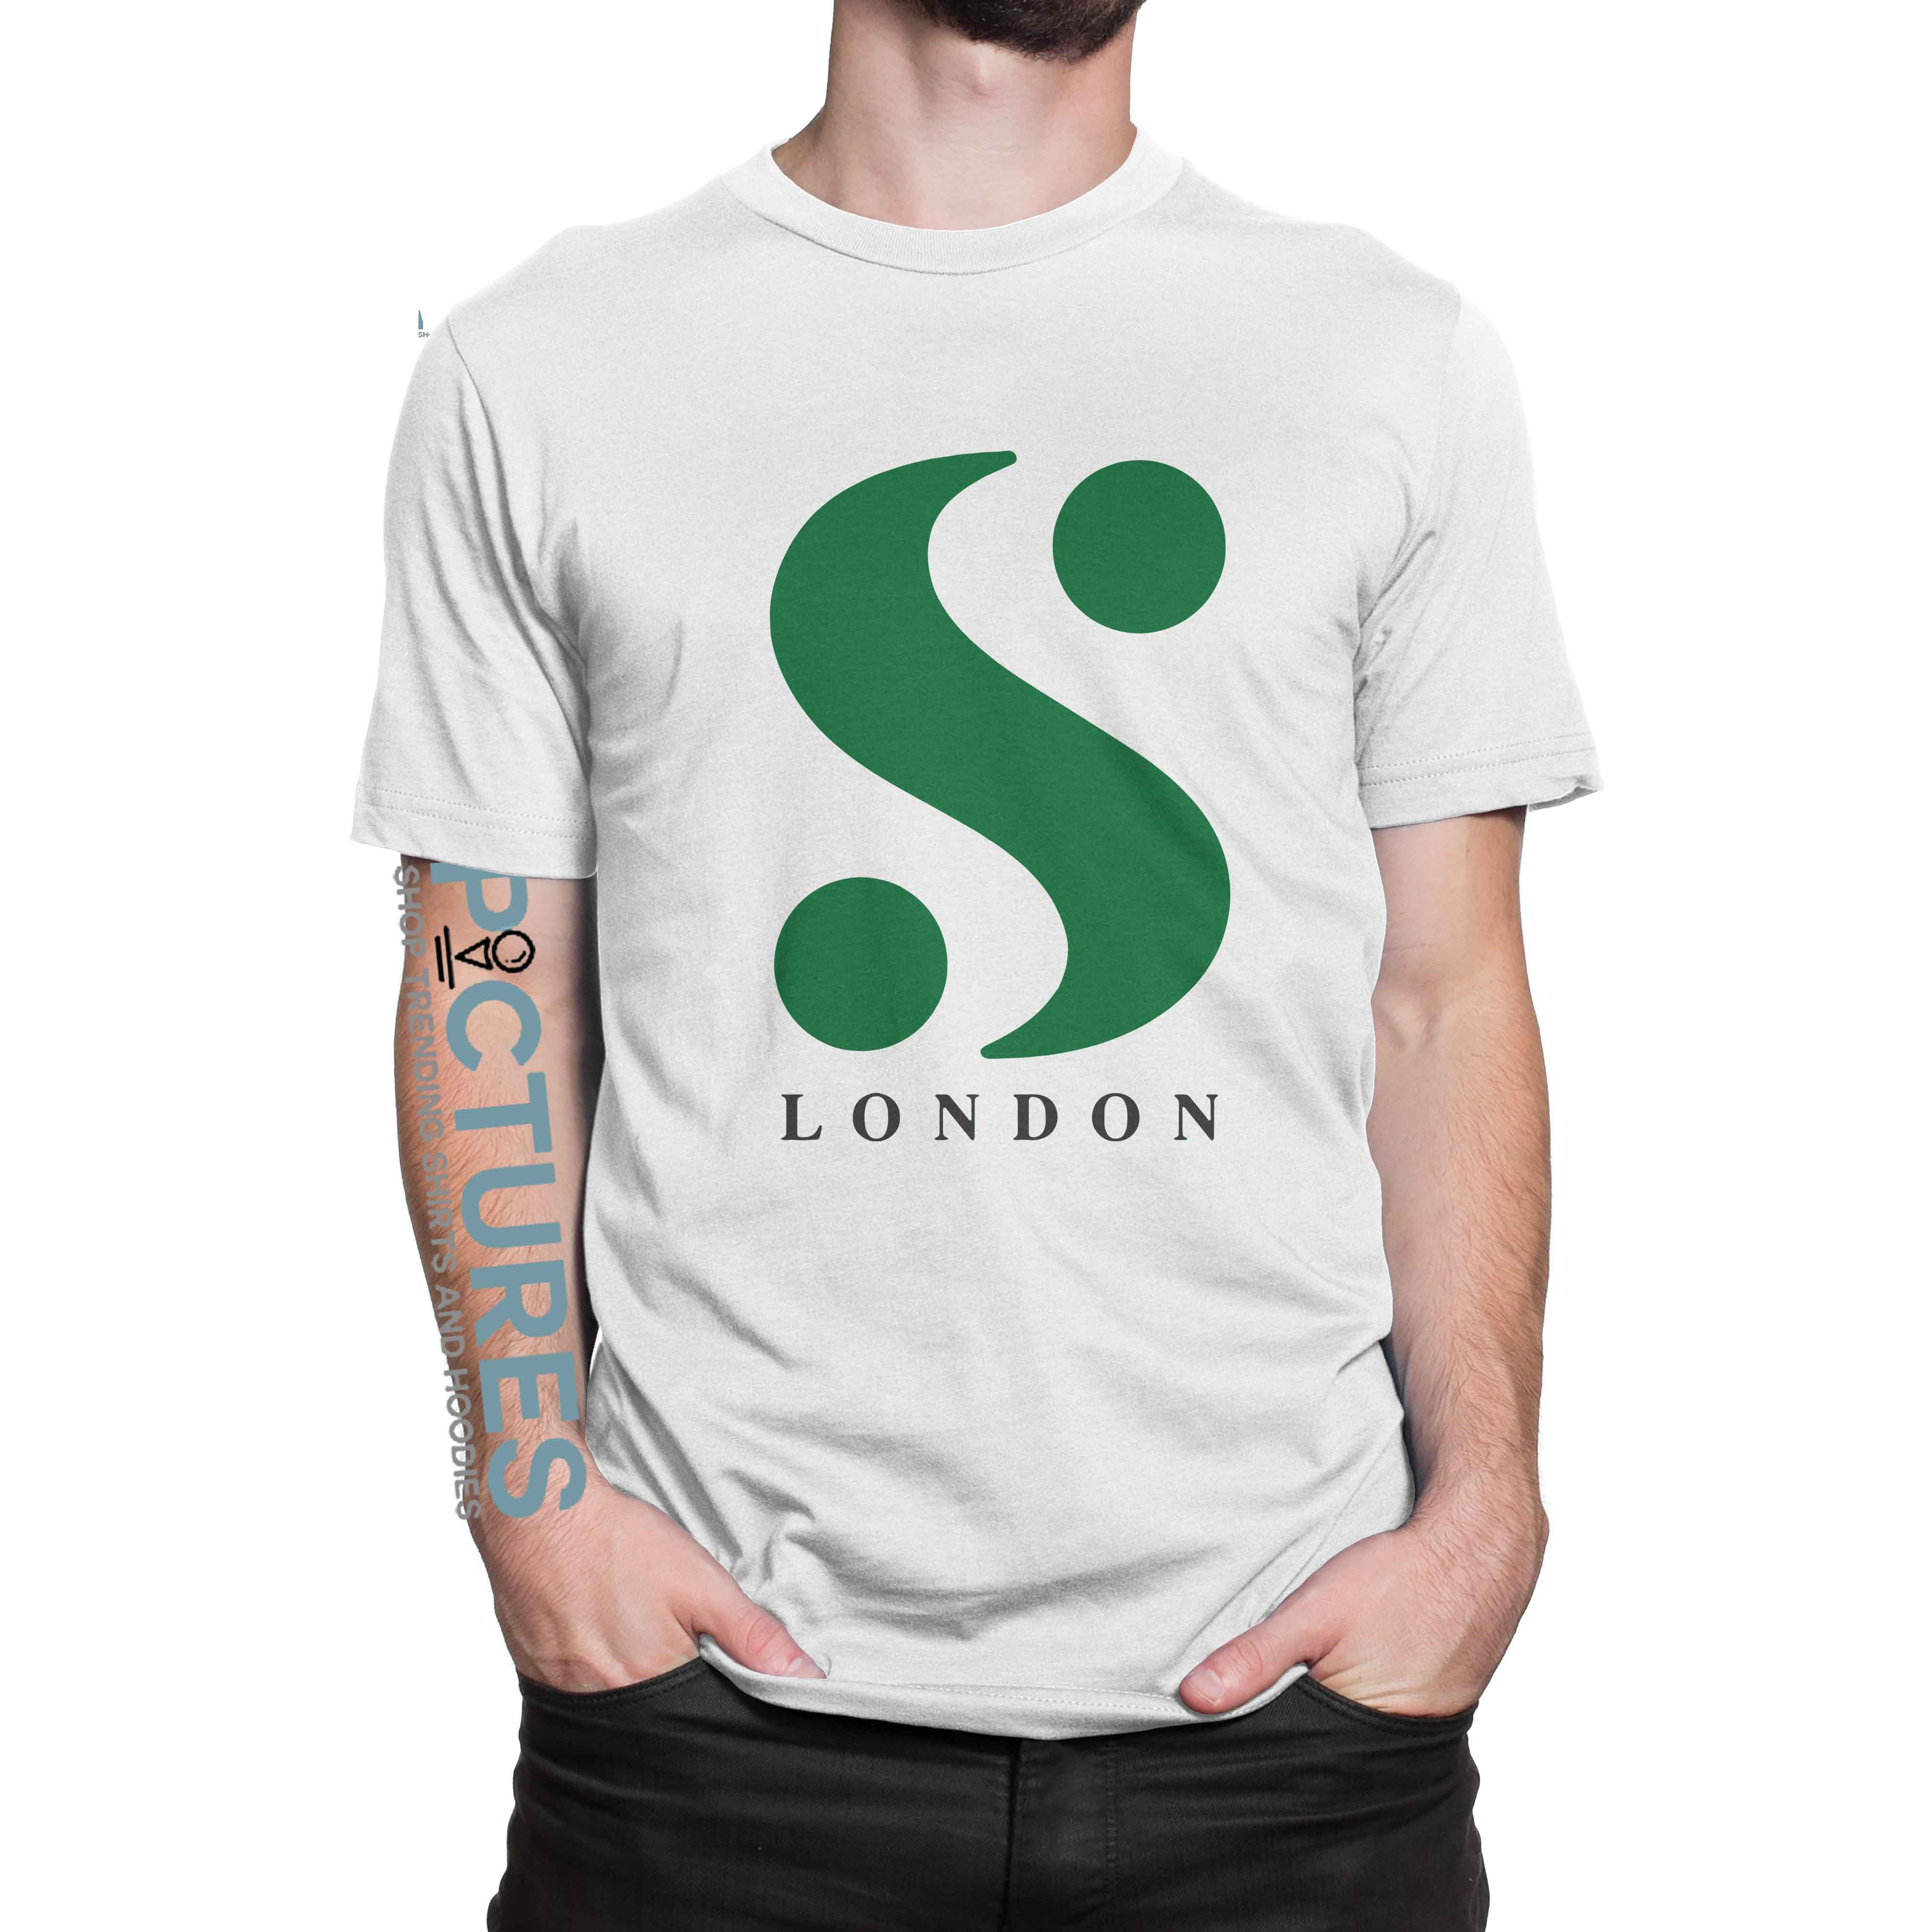 Serena Williams S London shirt